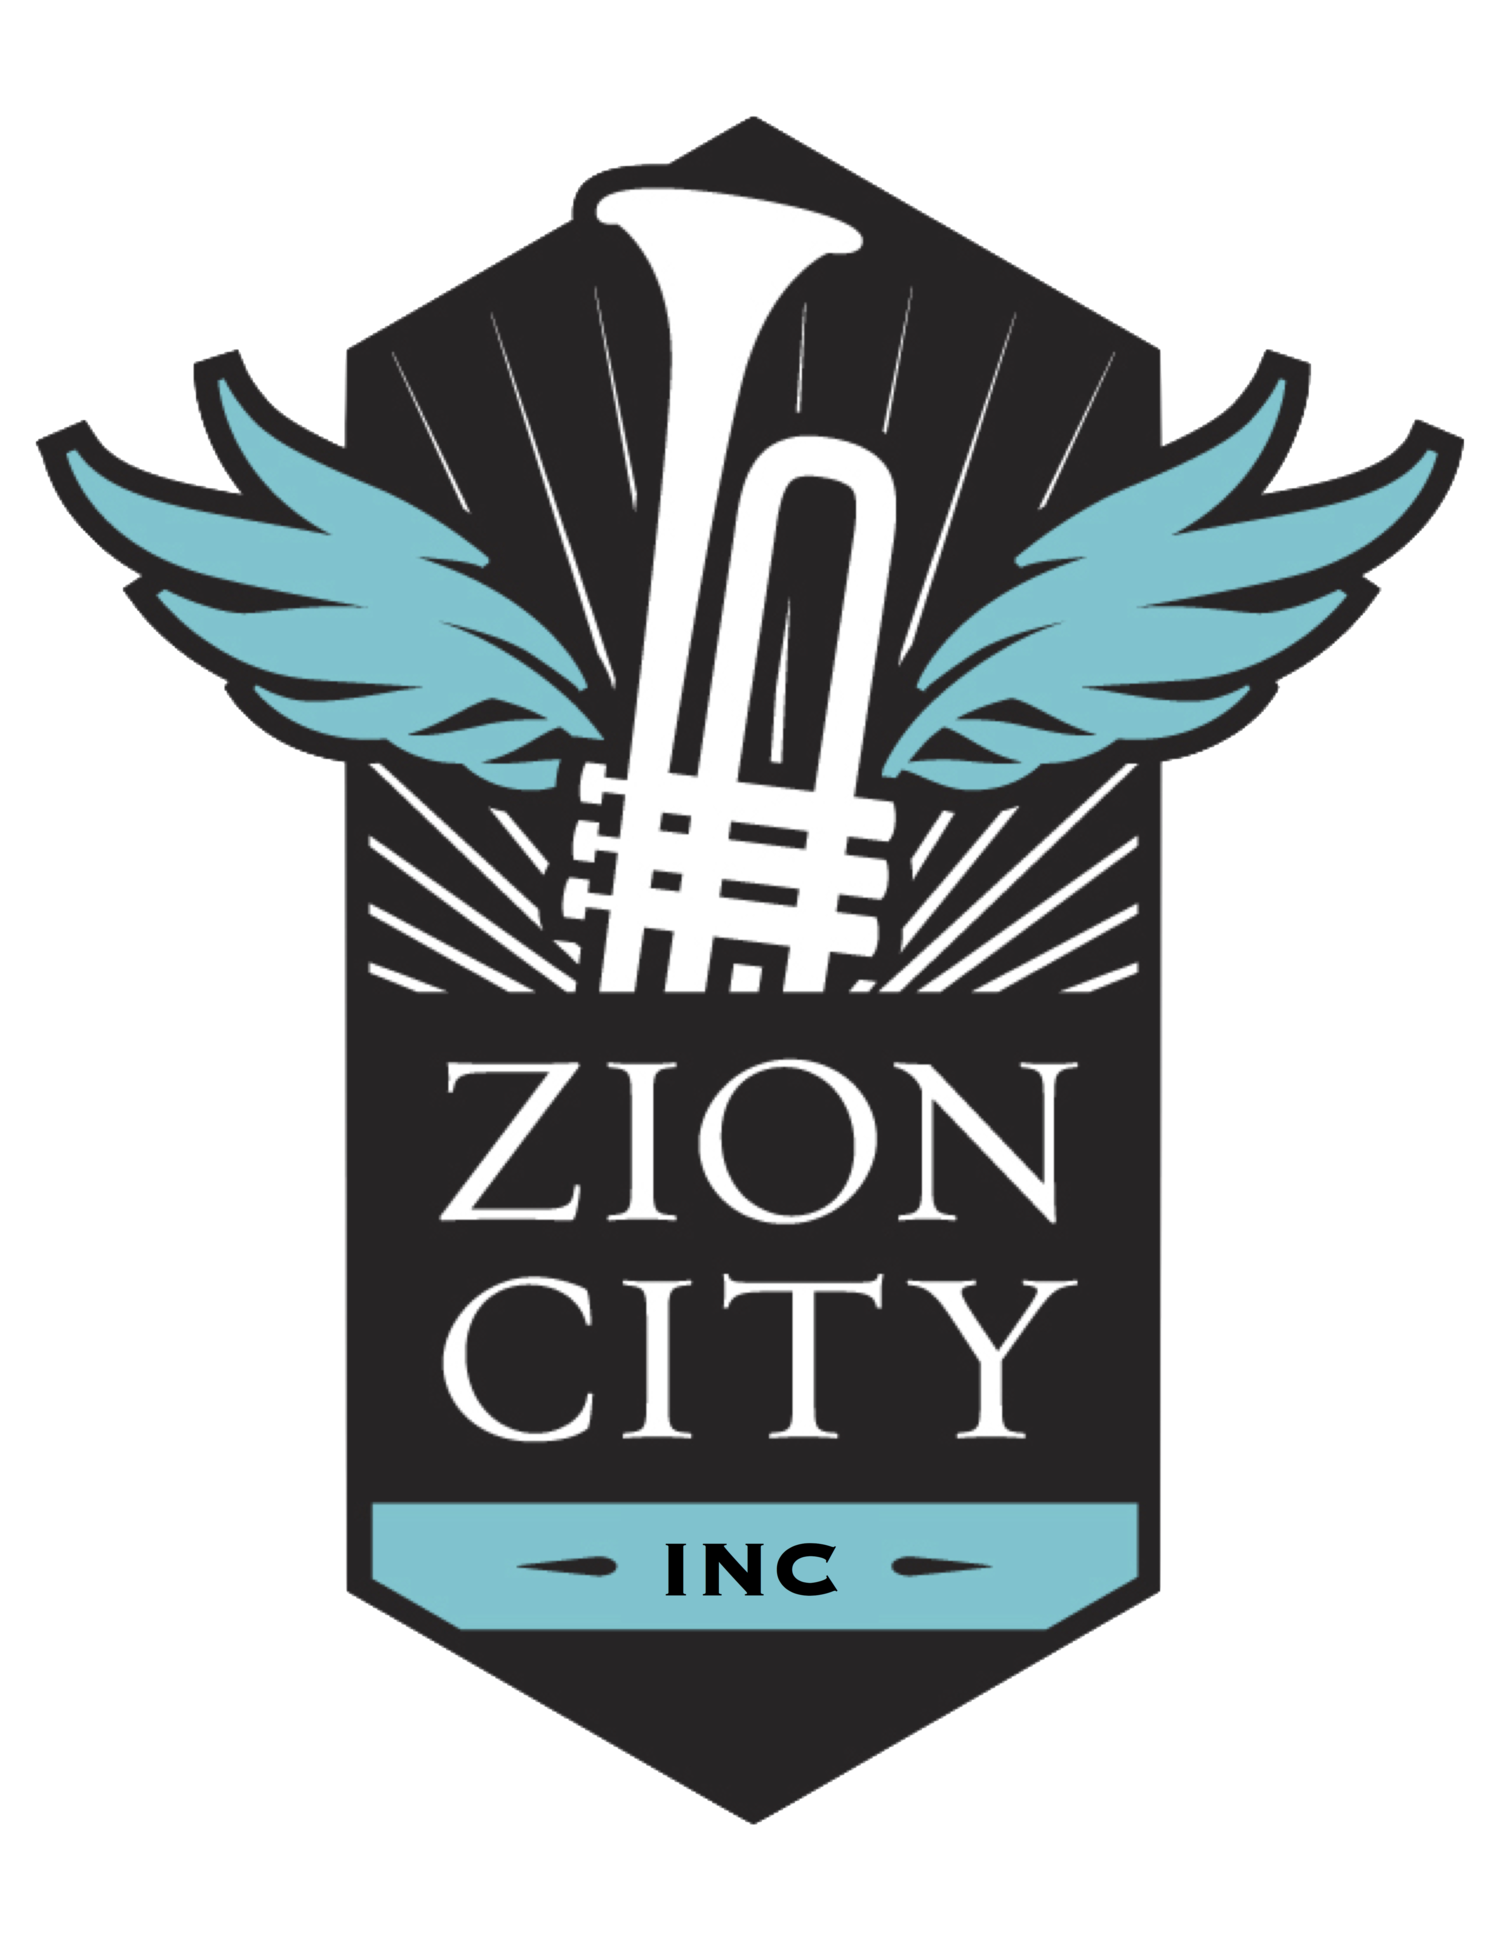 Zion City, Inc.